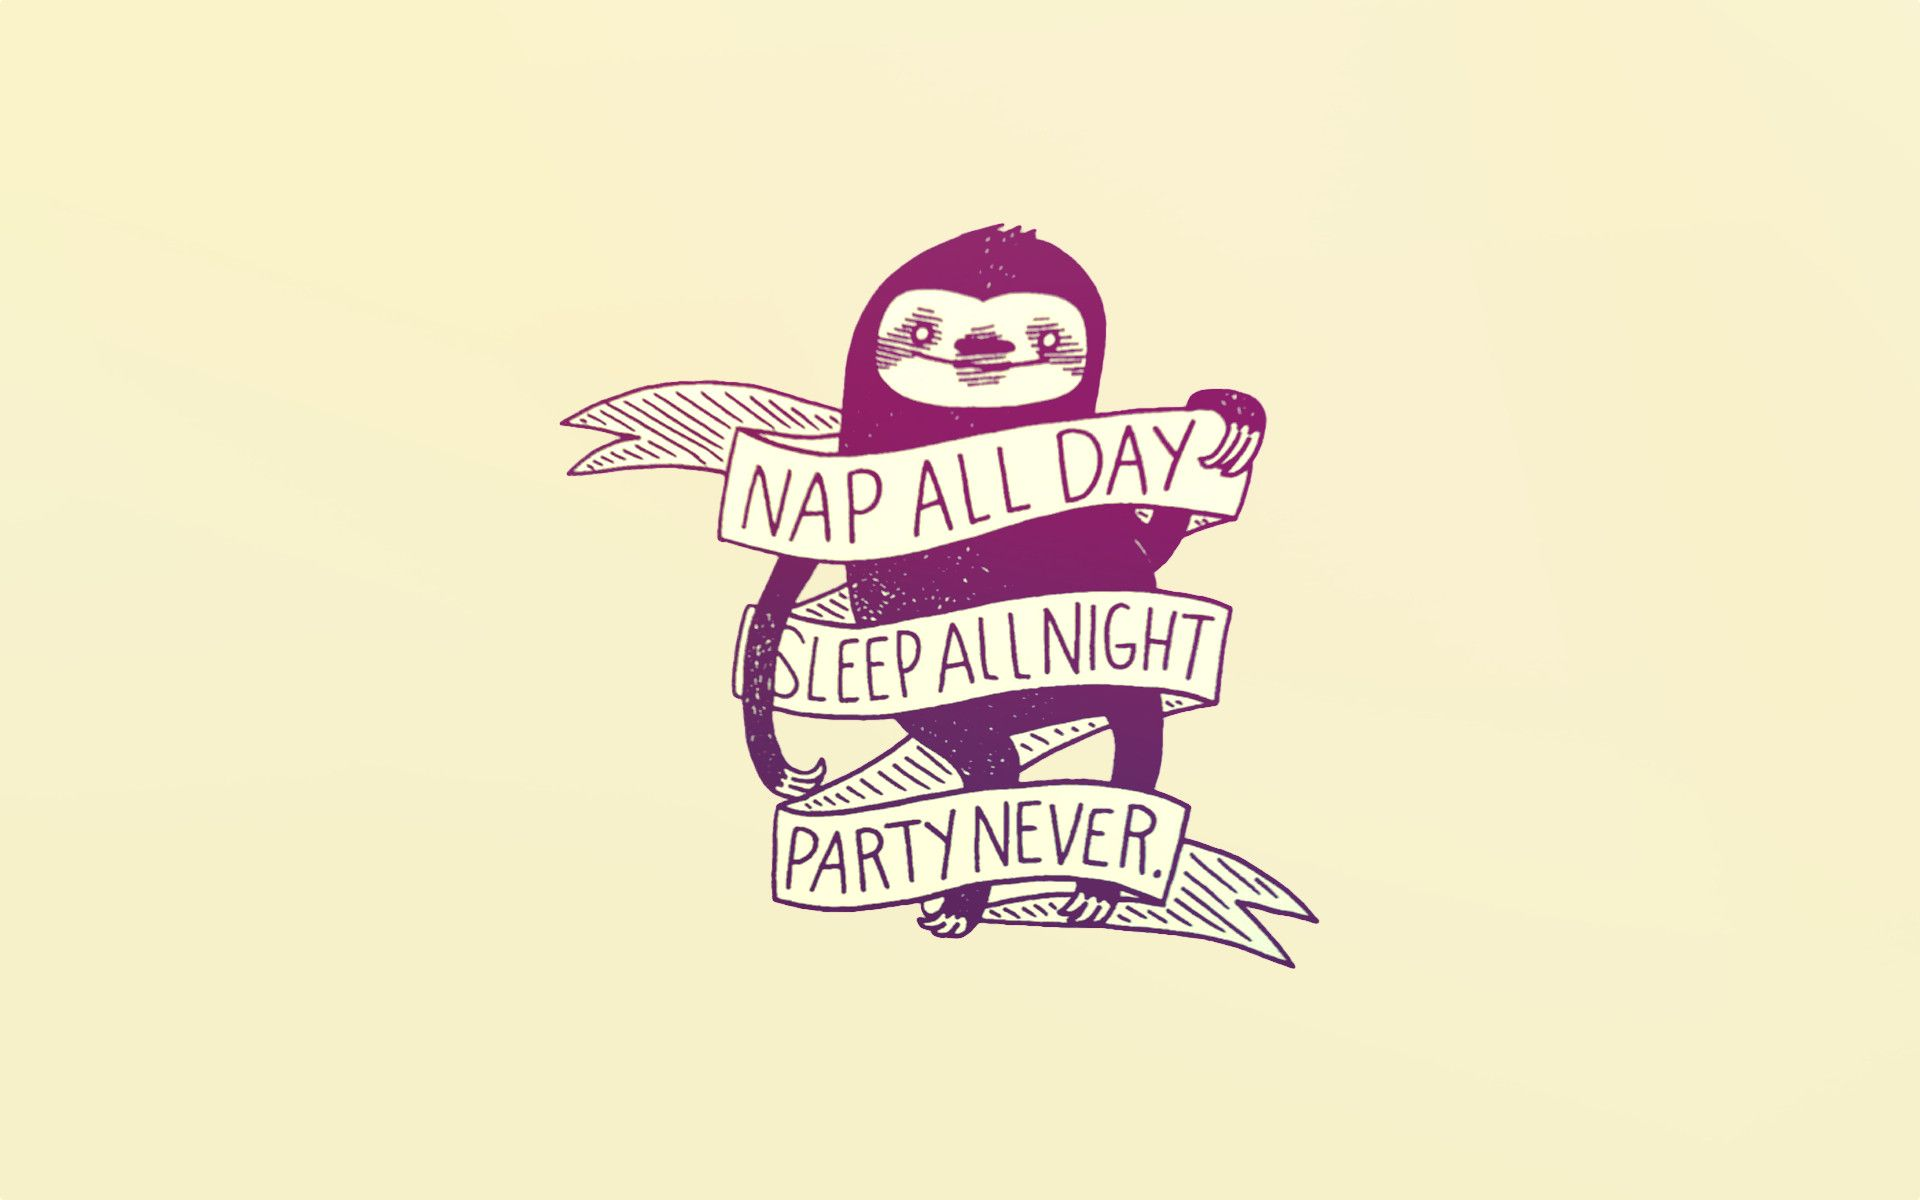 Made a wallpaper out of nap all day sloth wallpapers - Sloth wallpaper phone ...